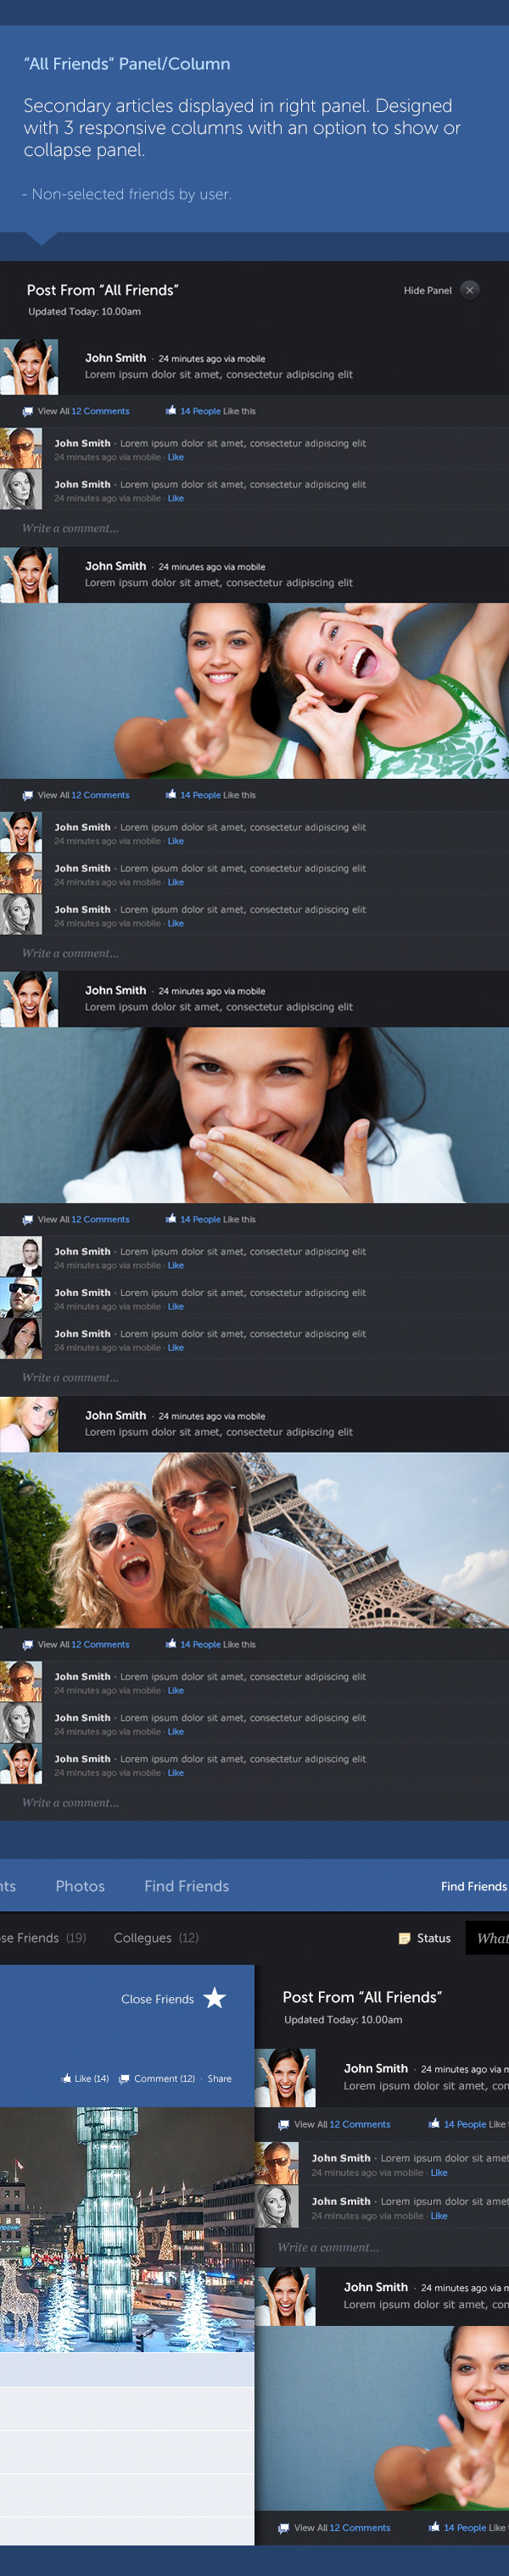 Facebook new design concept 4